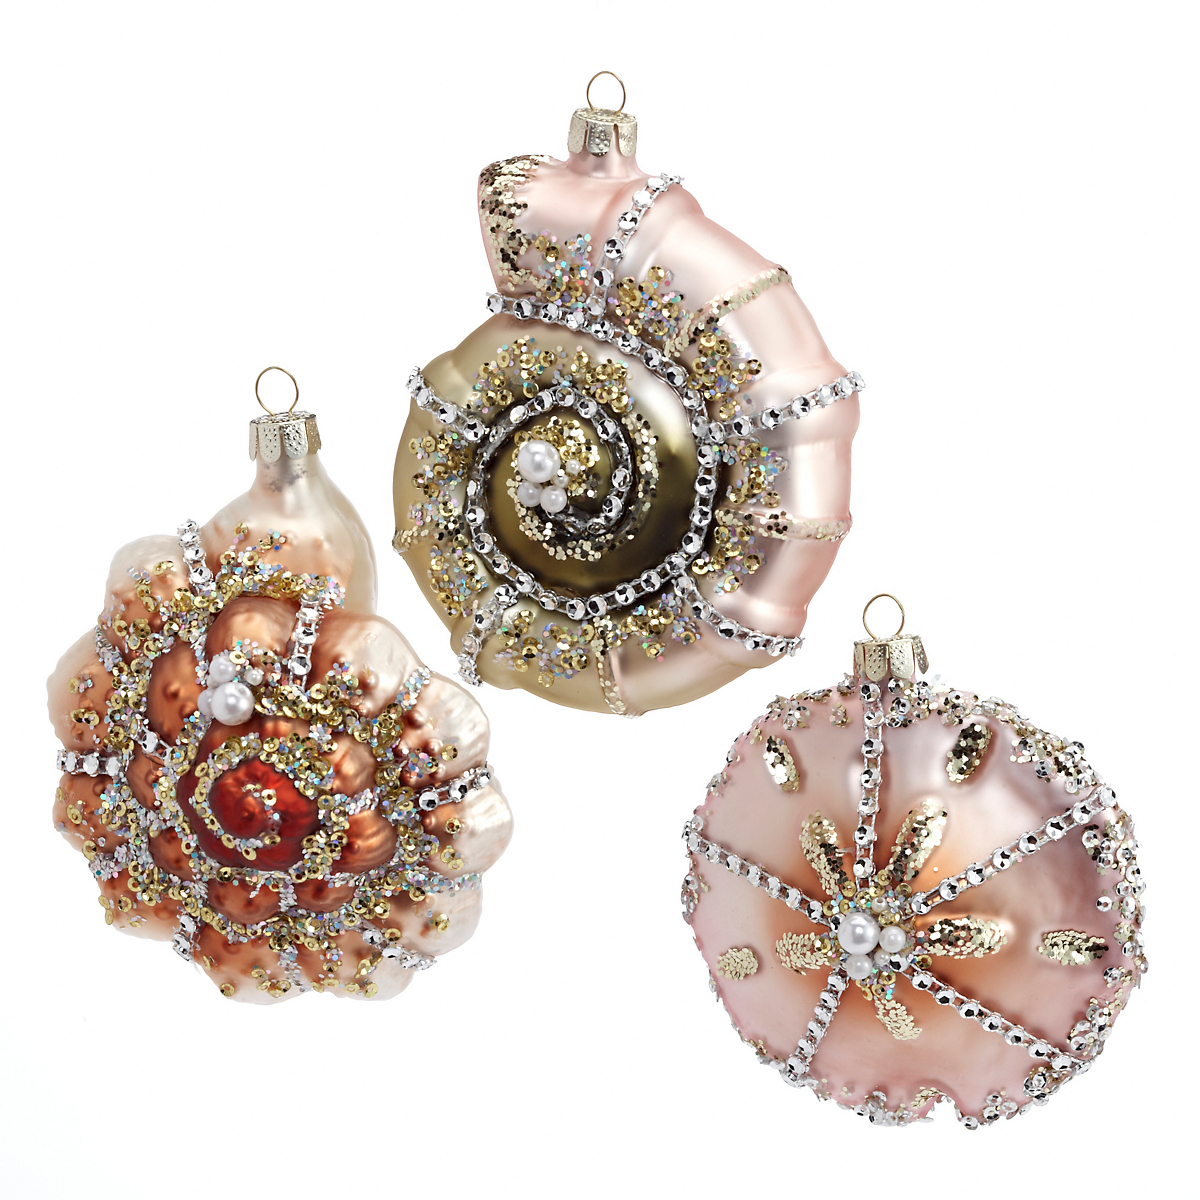 Bejeweled shell christmas ornaments set of gump s